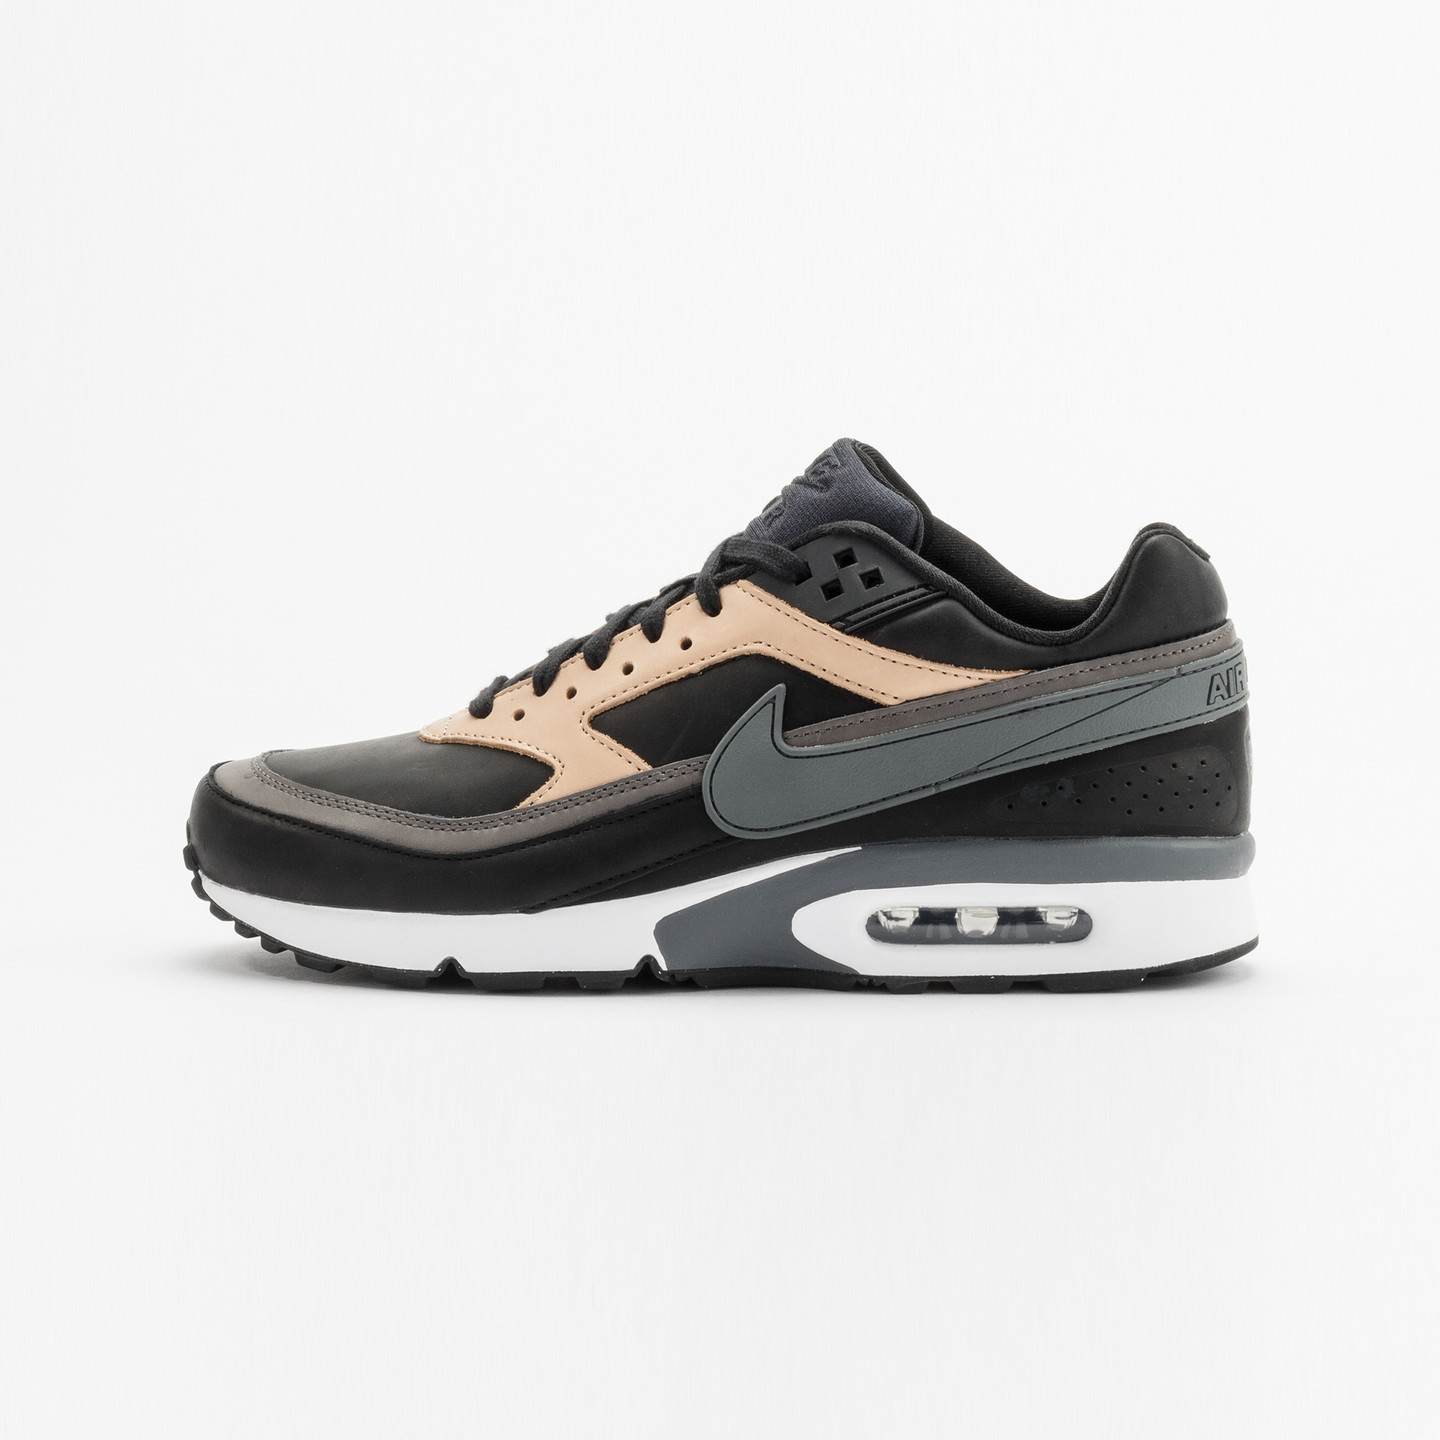 Nike Air Max BW Premium Leather Black / Dark Grey / Vachetta 819523-001